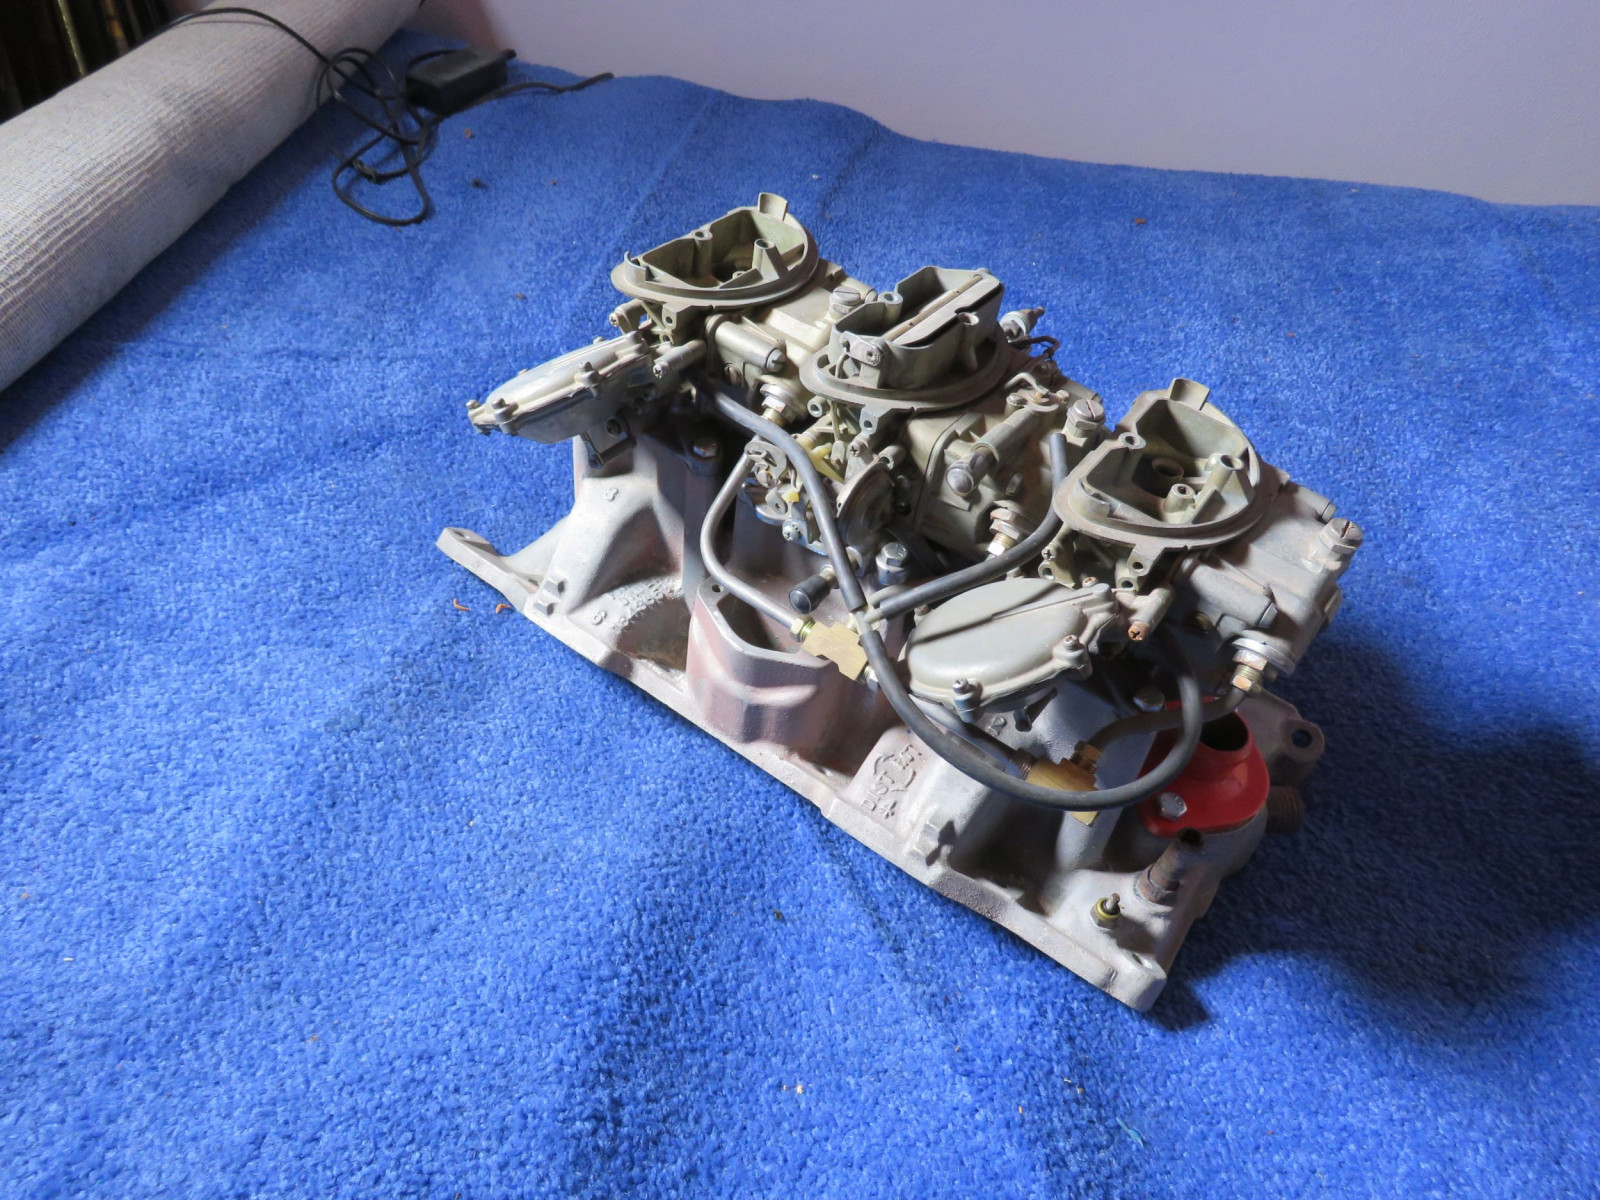 1970 Chrysler 340 Manual Trans 6 Pack Carb Set UP with Edelbrock Al2 Intake Set Up - Image 3